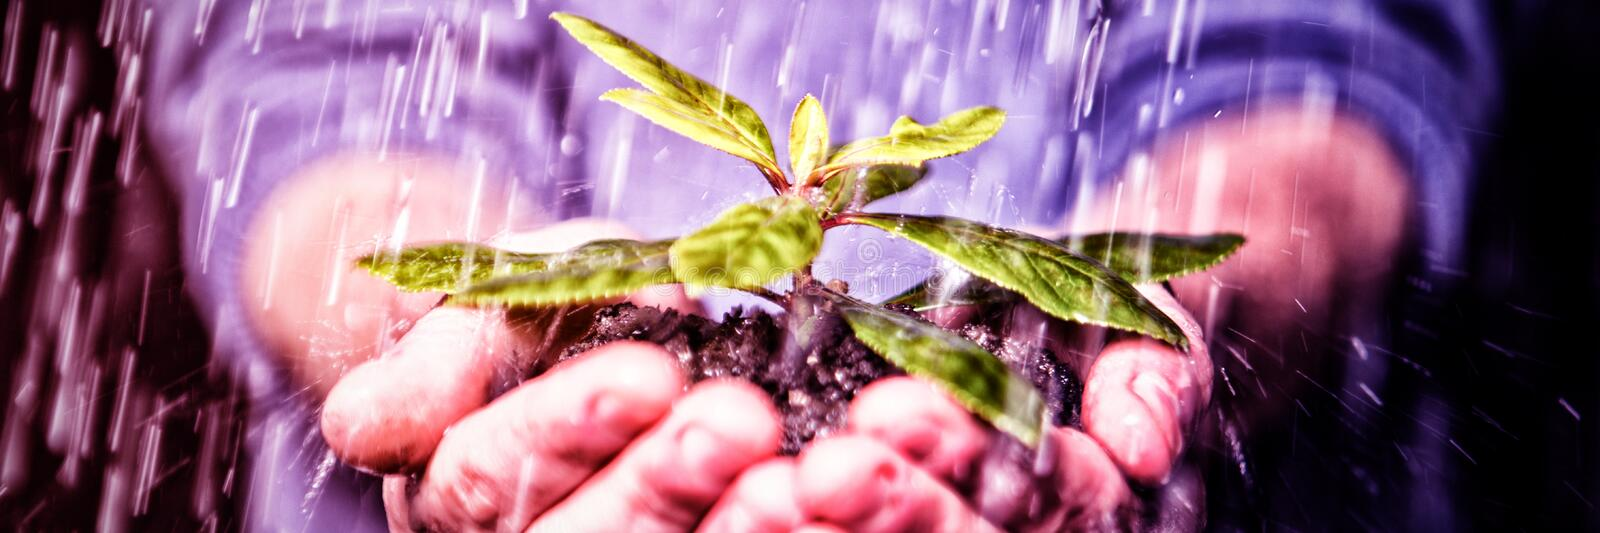 Hands holding seedling in the rain royalty free stock photo